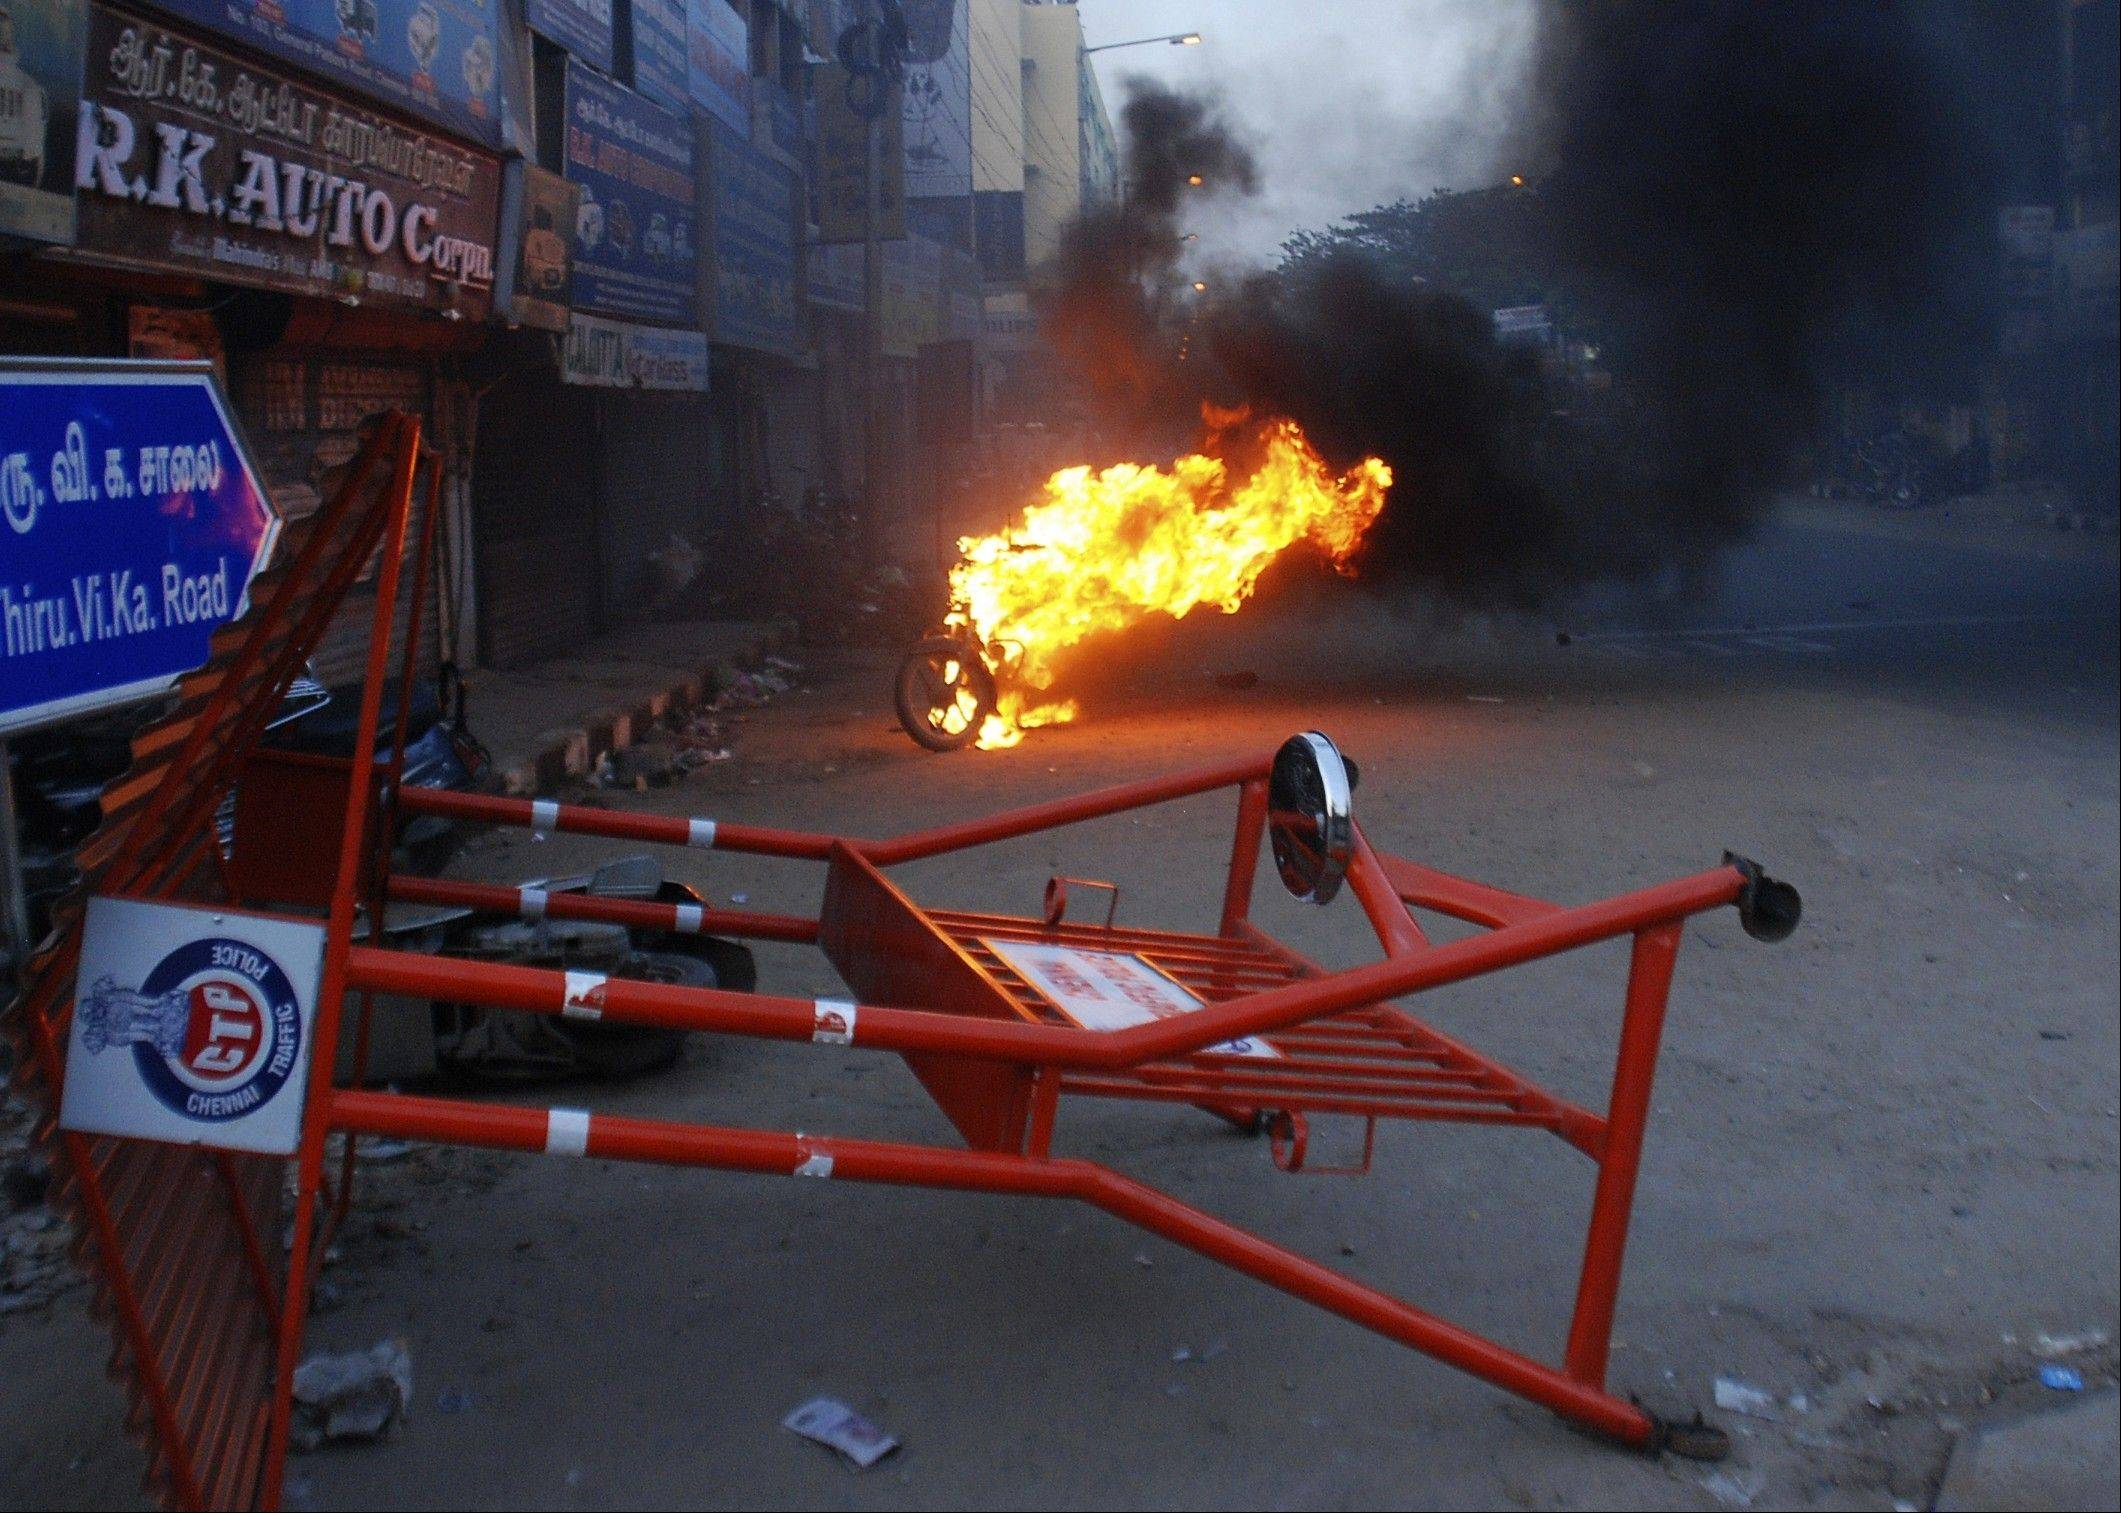 A motorcycle goes up in flames during a protest in front of the U.S. embassy in Chennai, India. Saudi Arabaia, in attempt to avoid this sort of protests over the anti-Islam film that ridicules Islam's Prophet Muhammad, blocked YouTube on Tuesday to prevent the film from being seen.